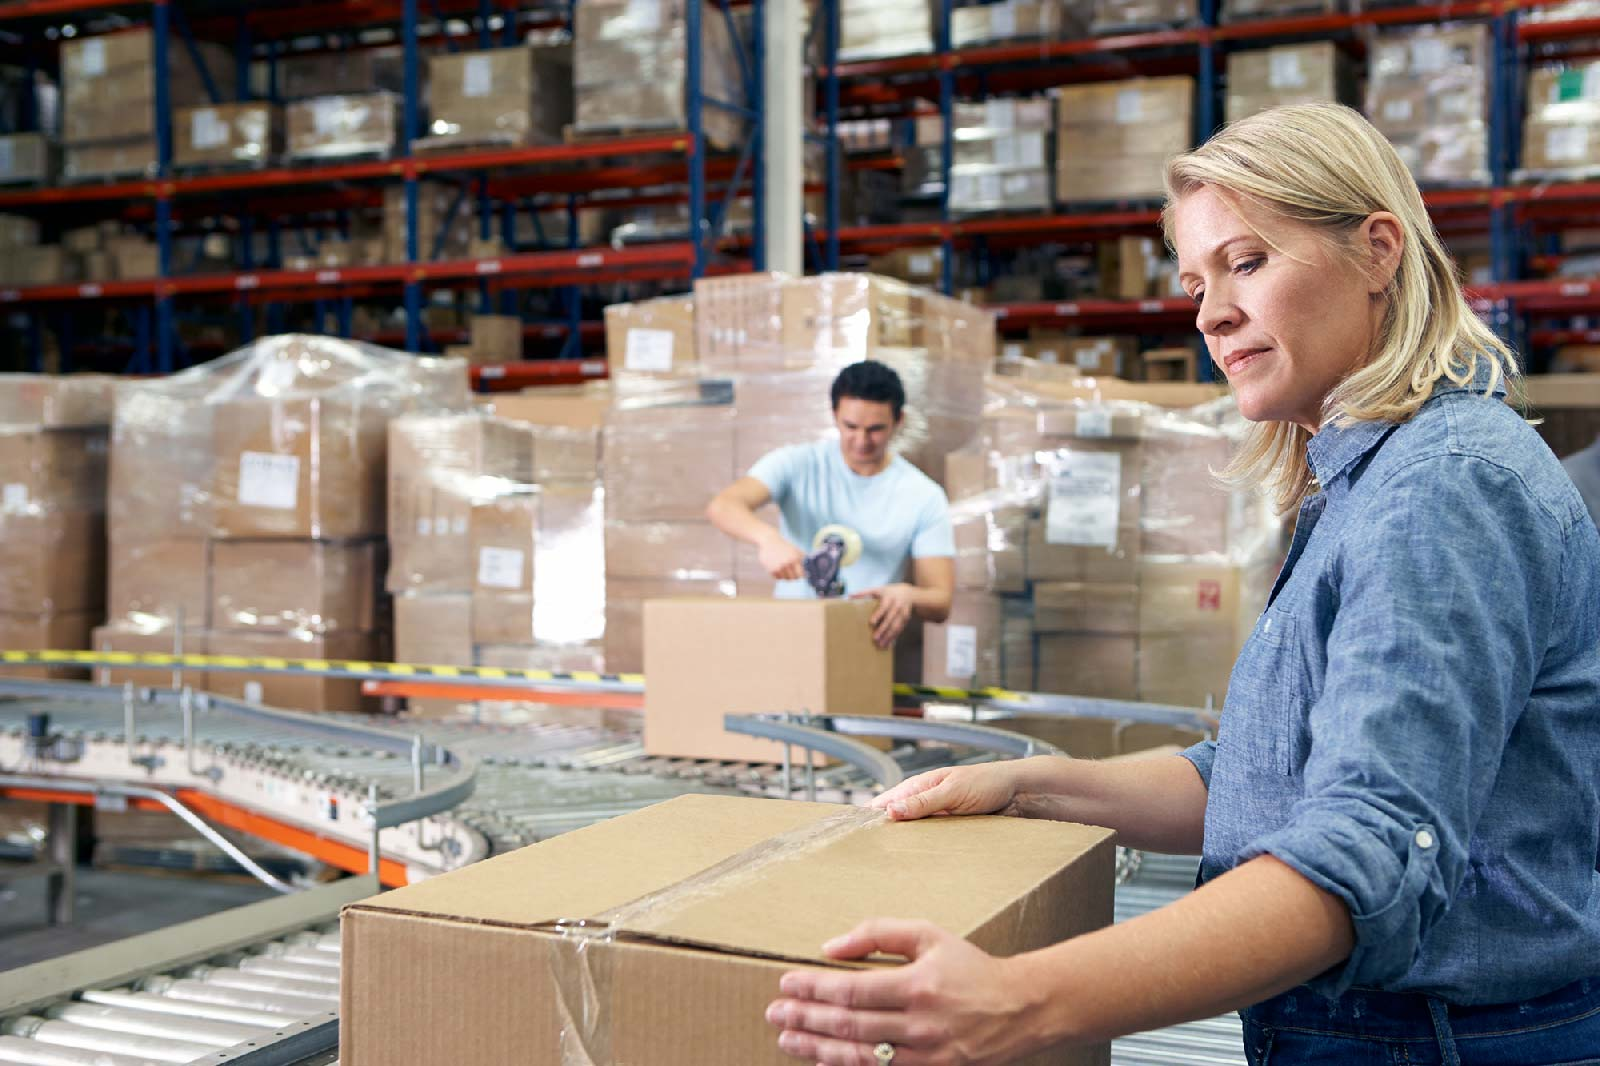 workers-in-distribution-warehouse